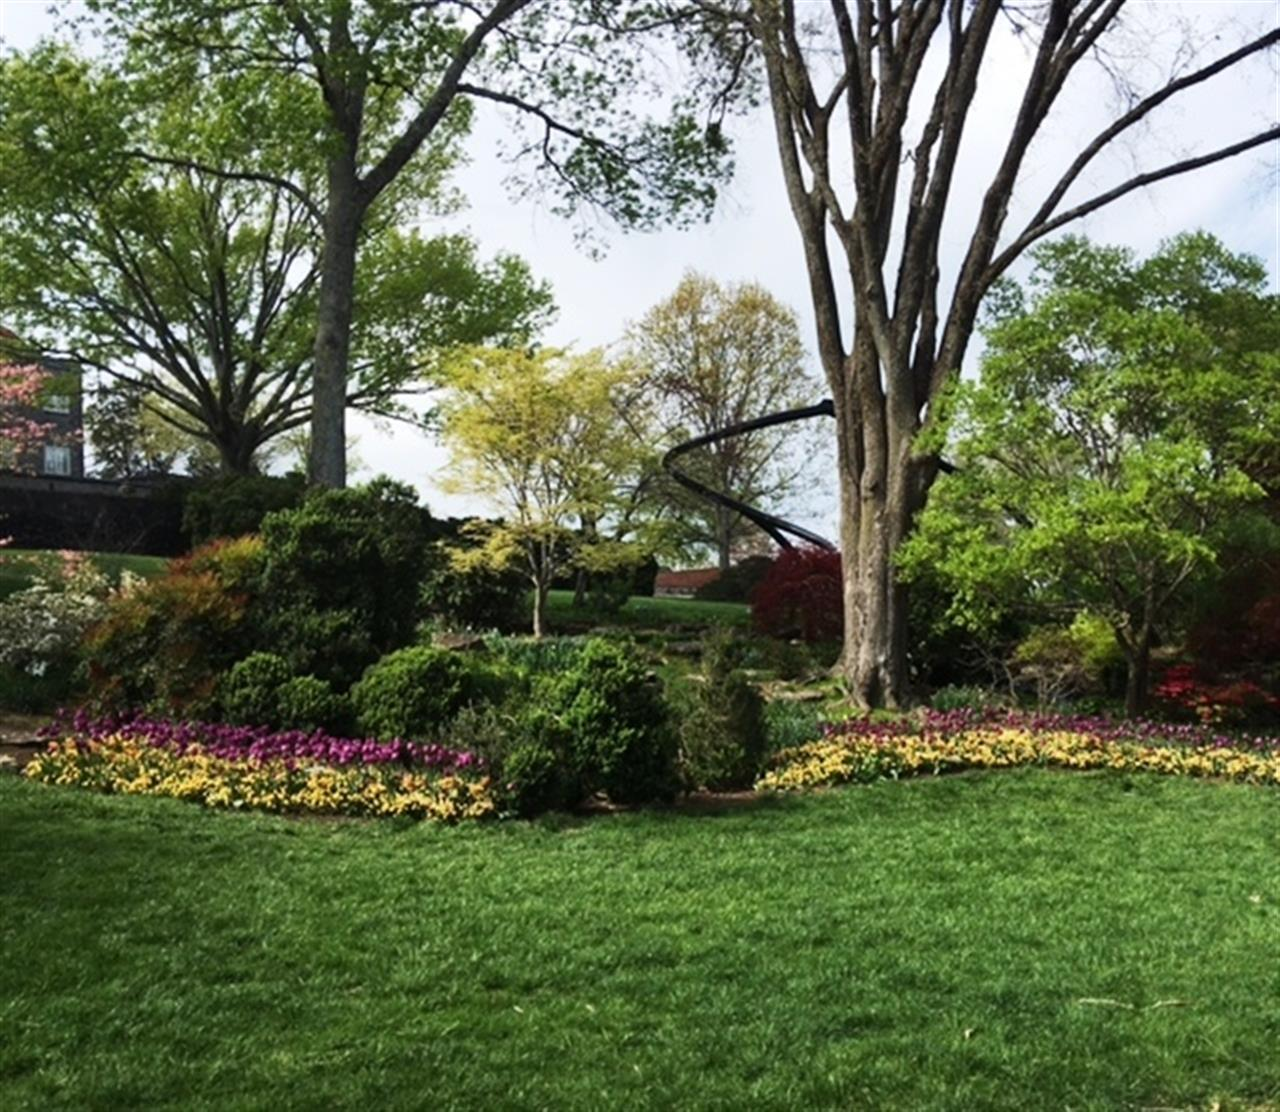 View in front of the Mansion at Cheekwood Gardens #leadingRElocal #Cheekwood Botanical Gardens #Nashville, TN